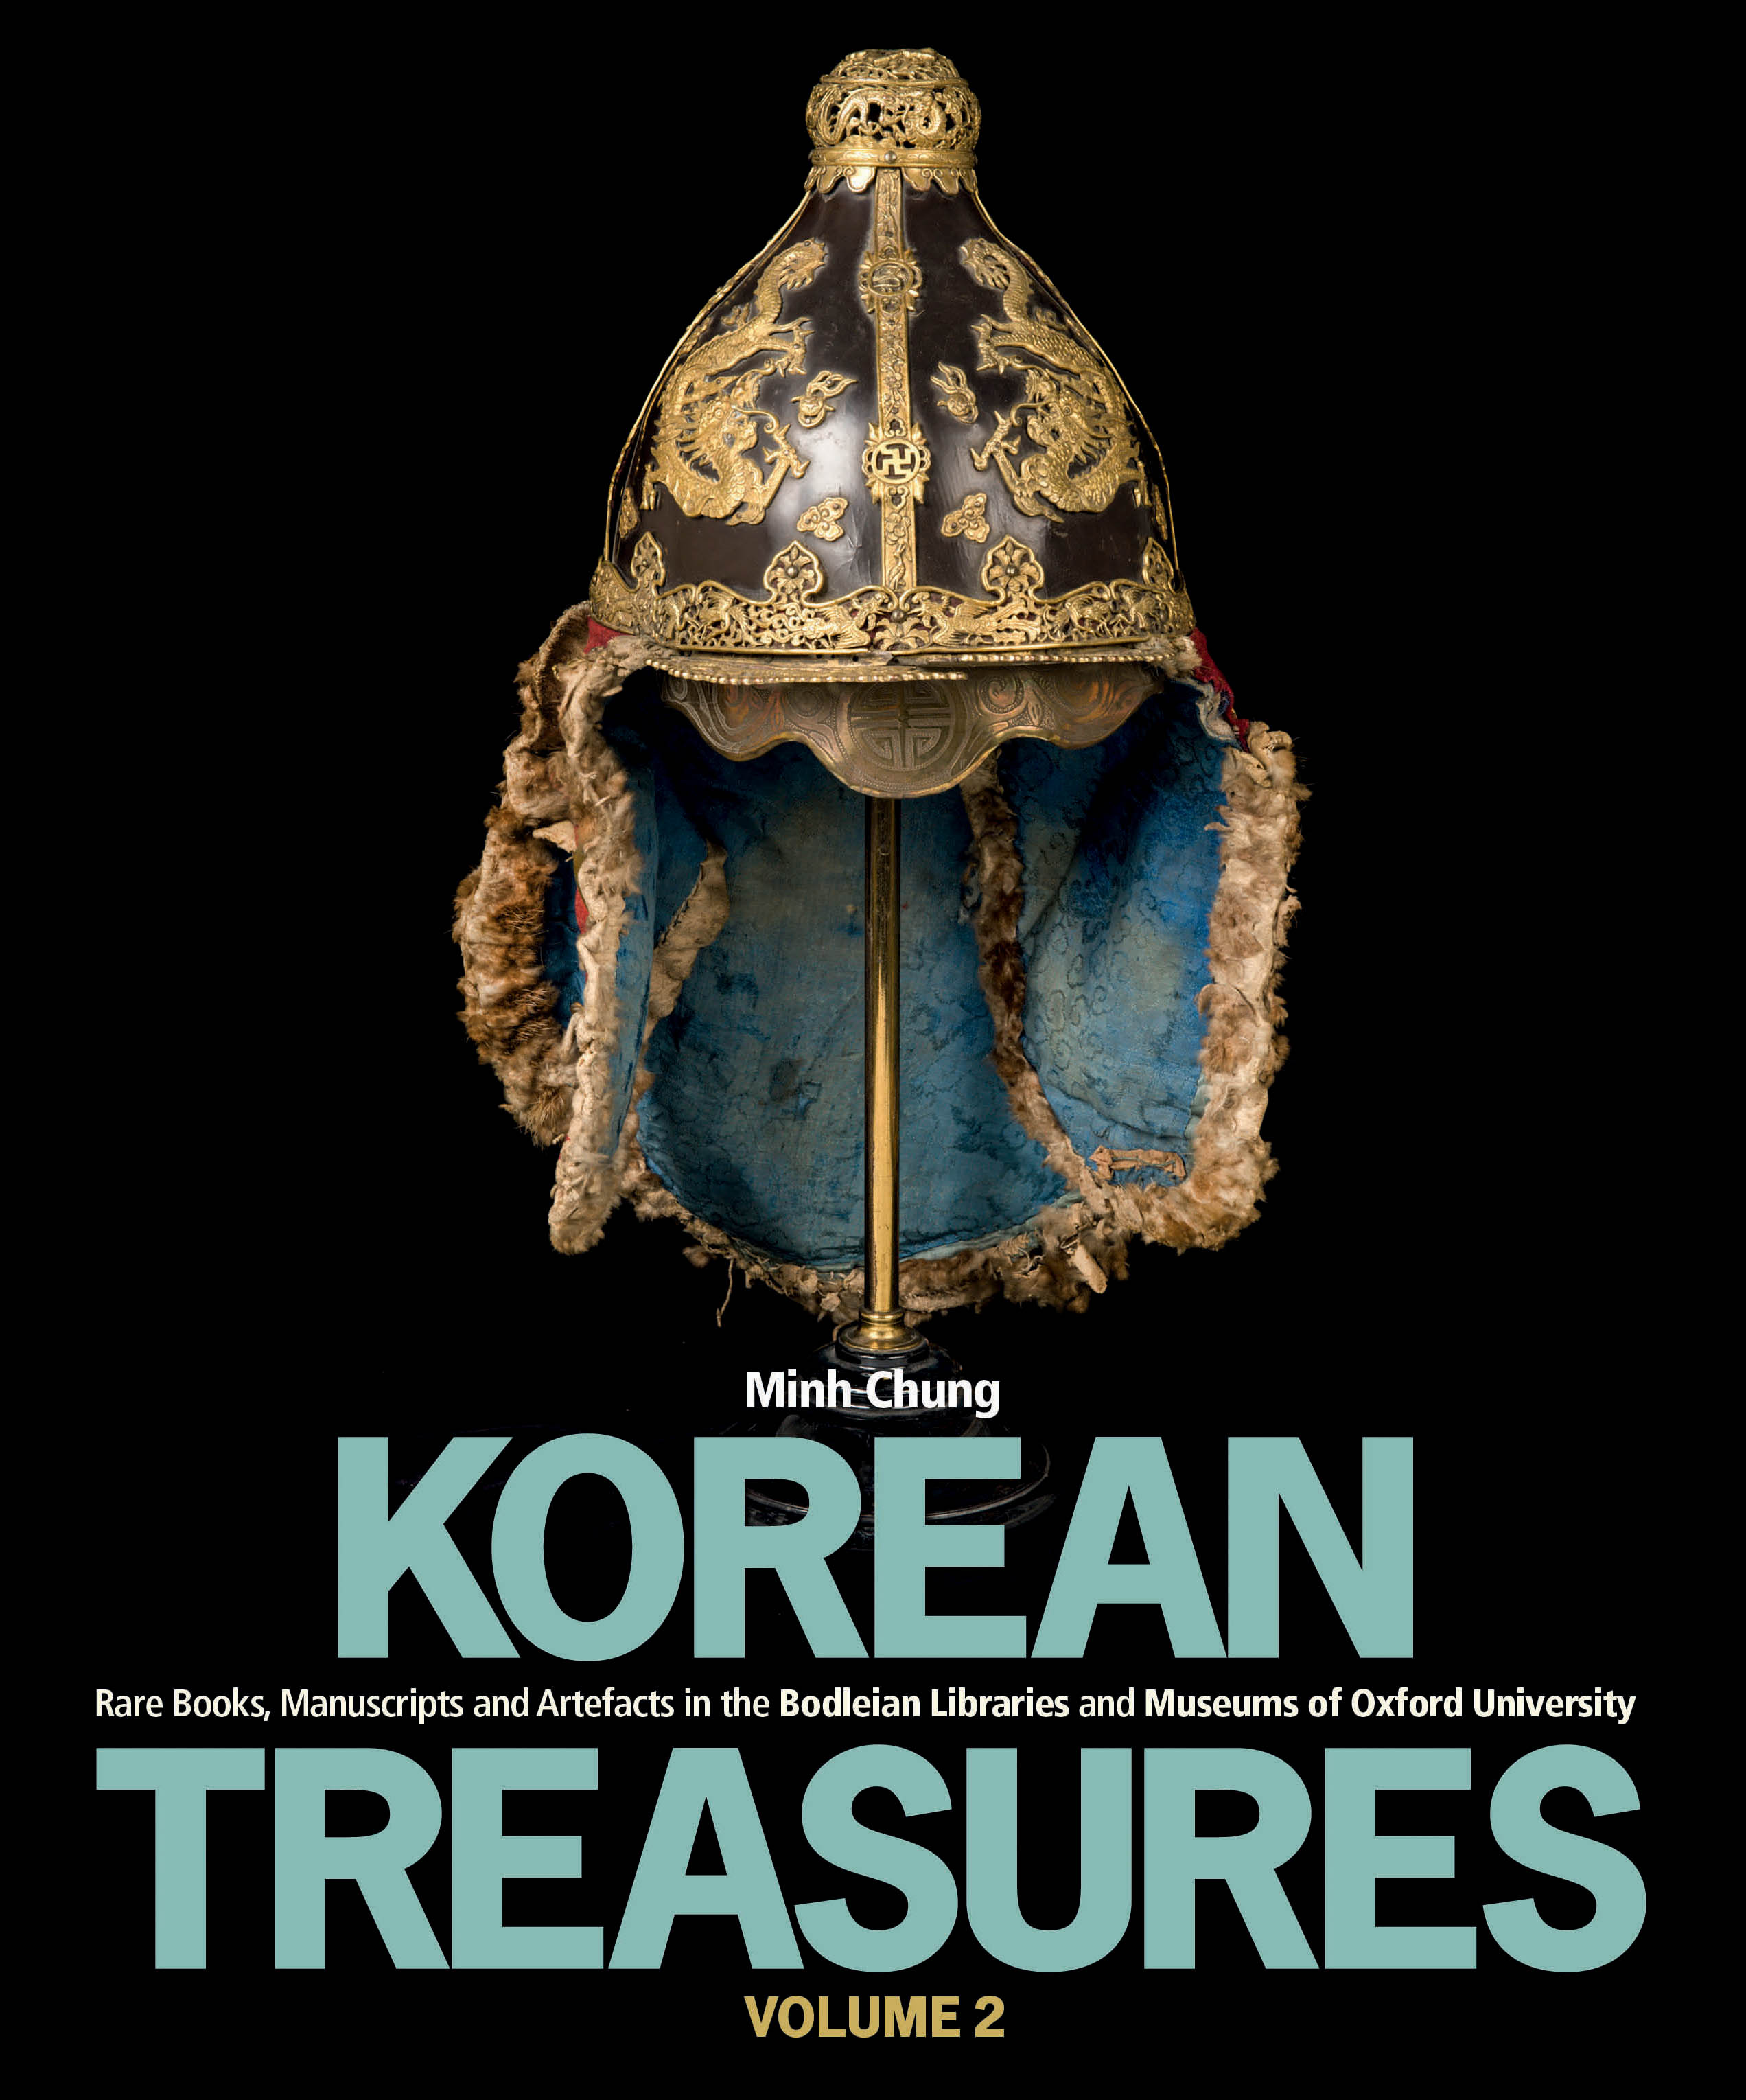 Korean Treasures Volume 2